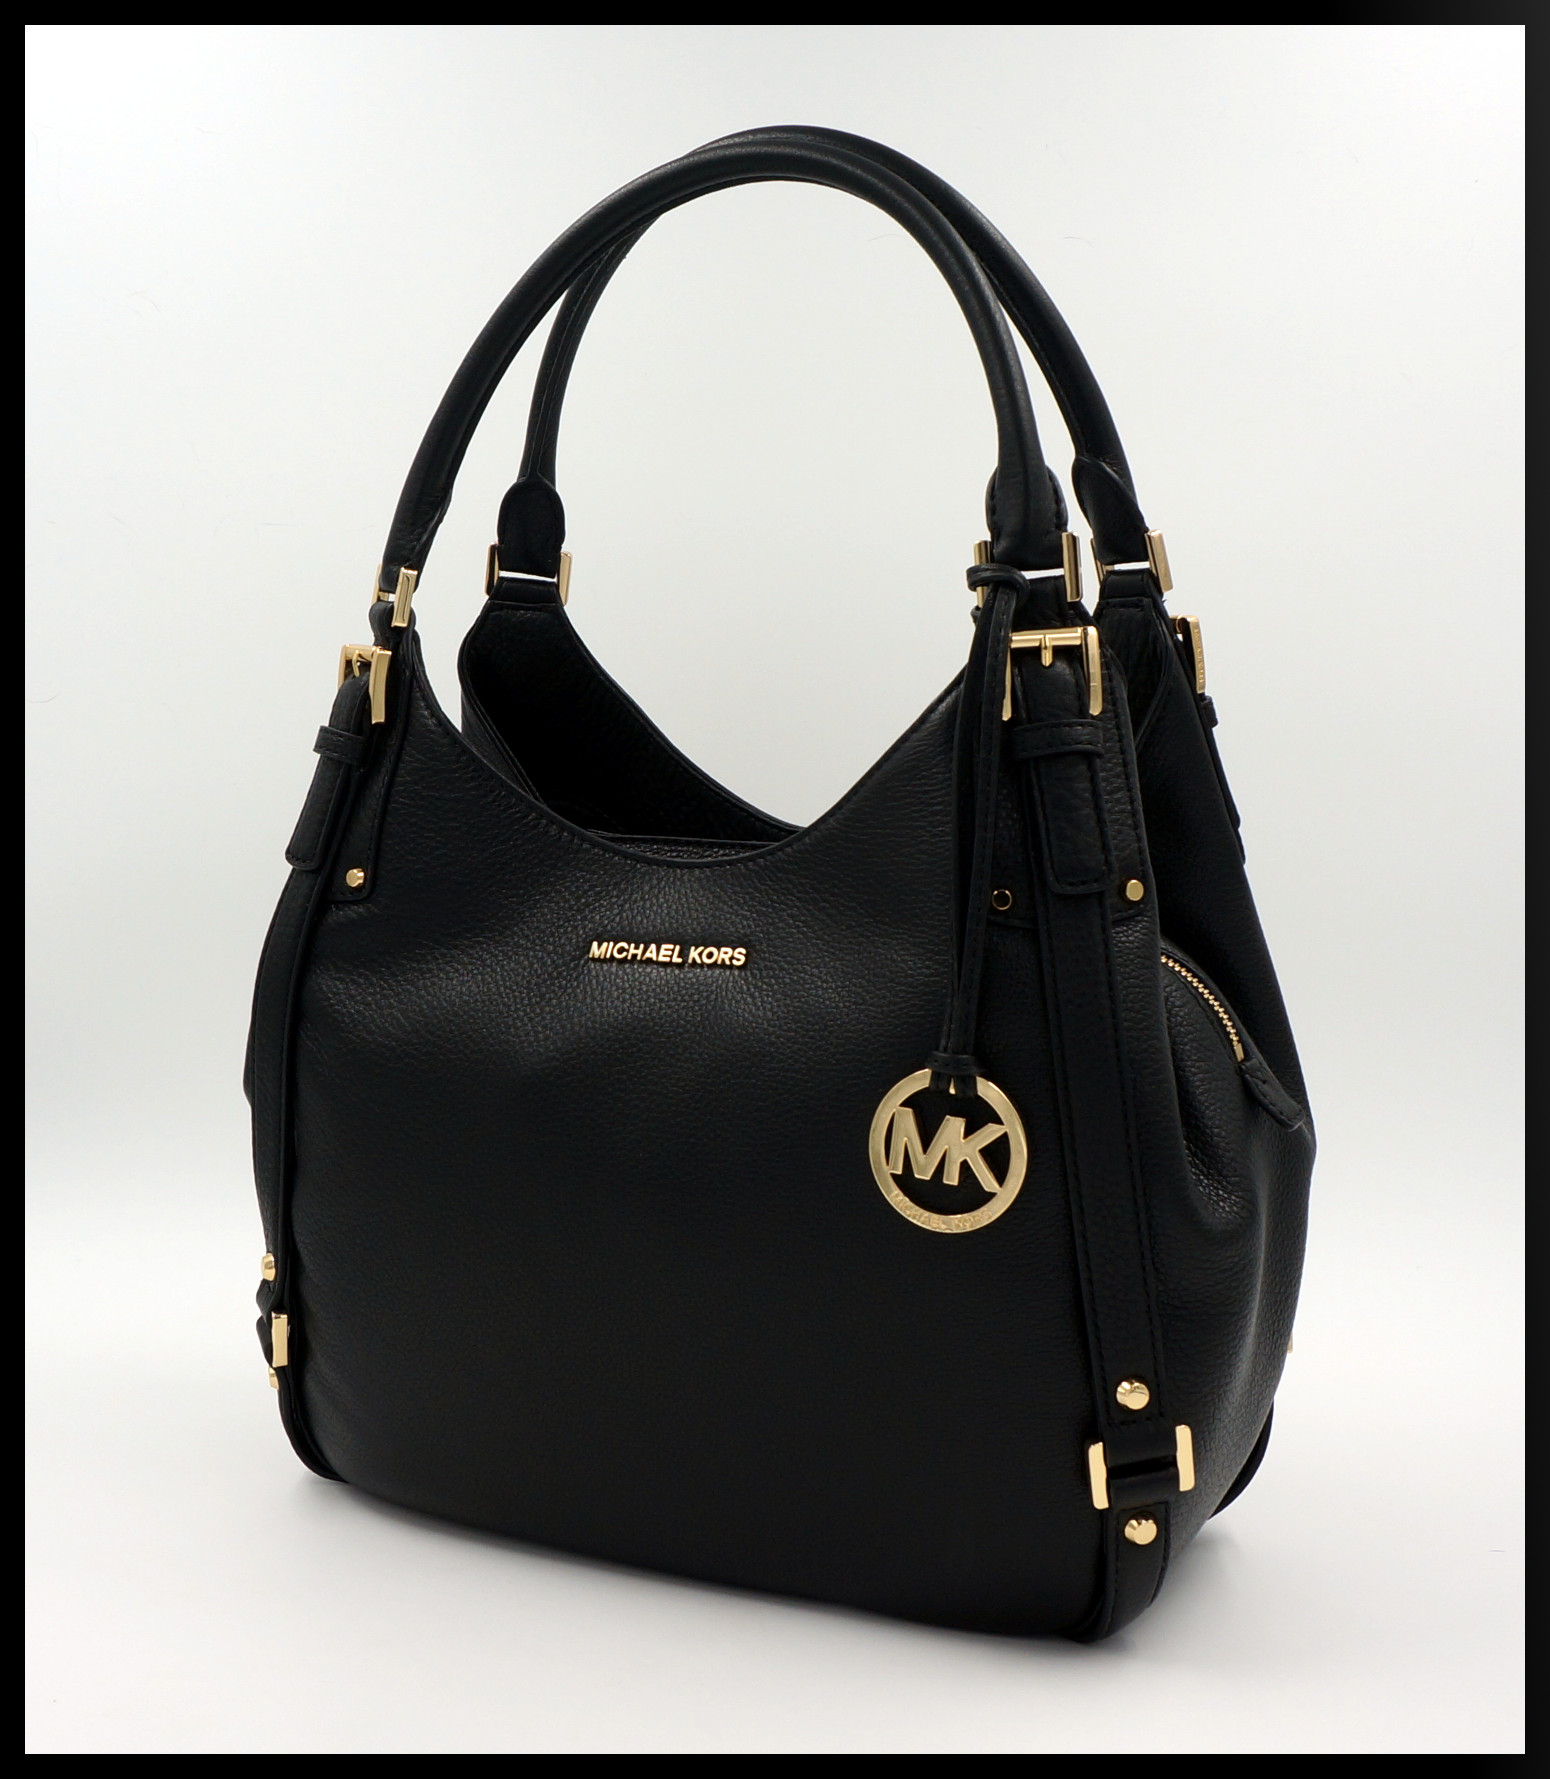 michael kors tasche handtasche bedford lg leder schwarz. Black Bedroom Furniture Sets. Home Design Ideas